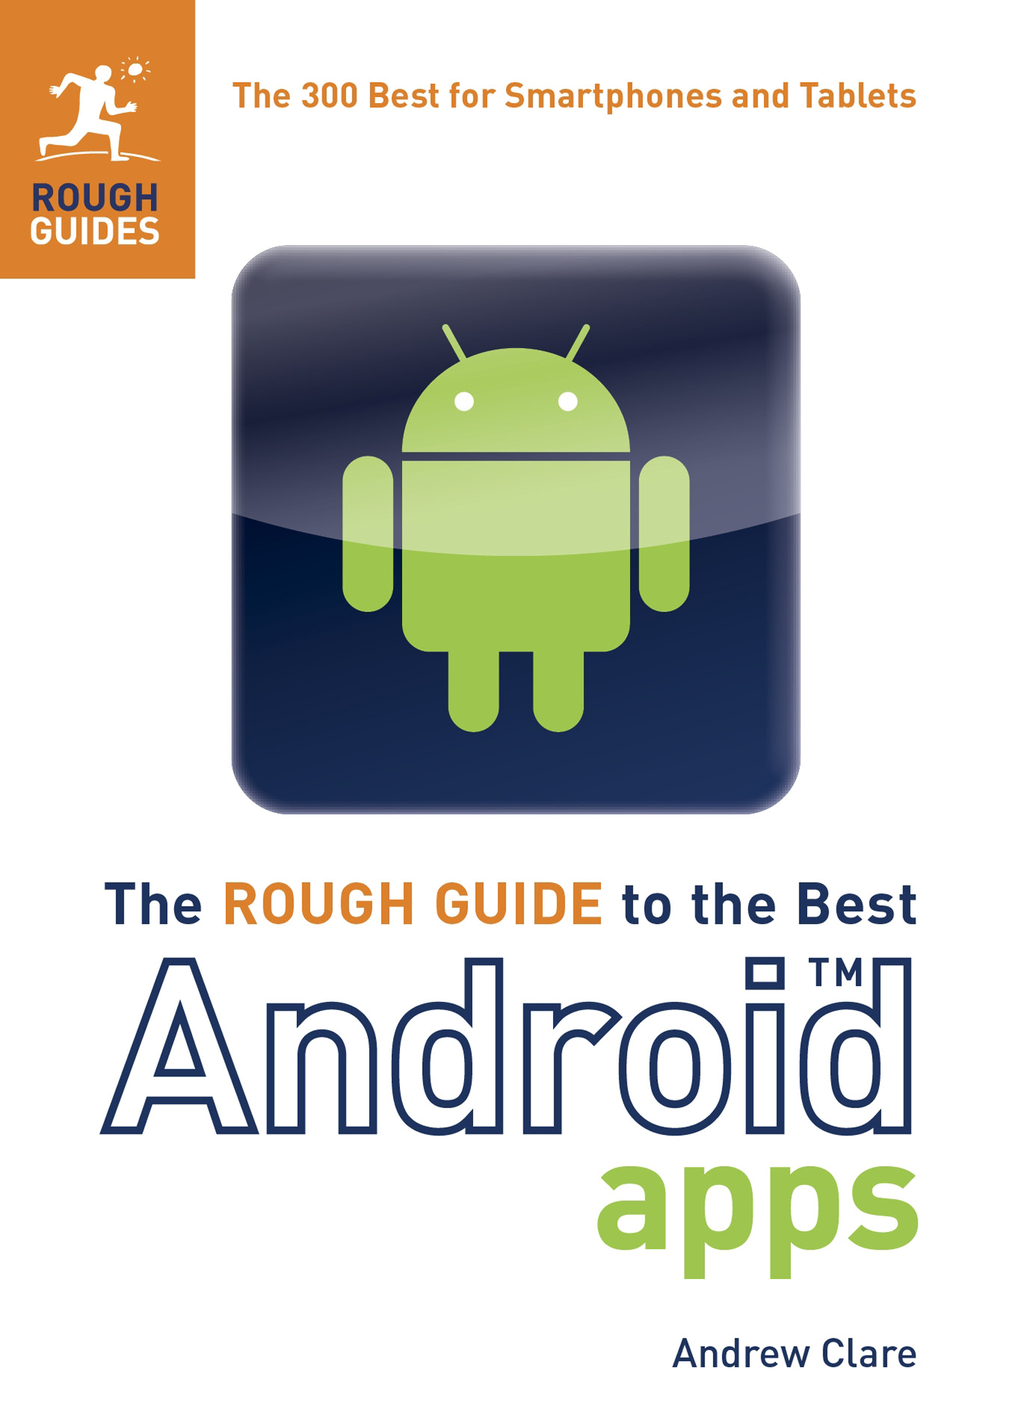 The Rough Guide to the Best Android Apps The 400 Best for Smartphones and Tablets